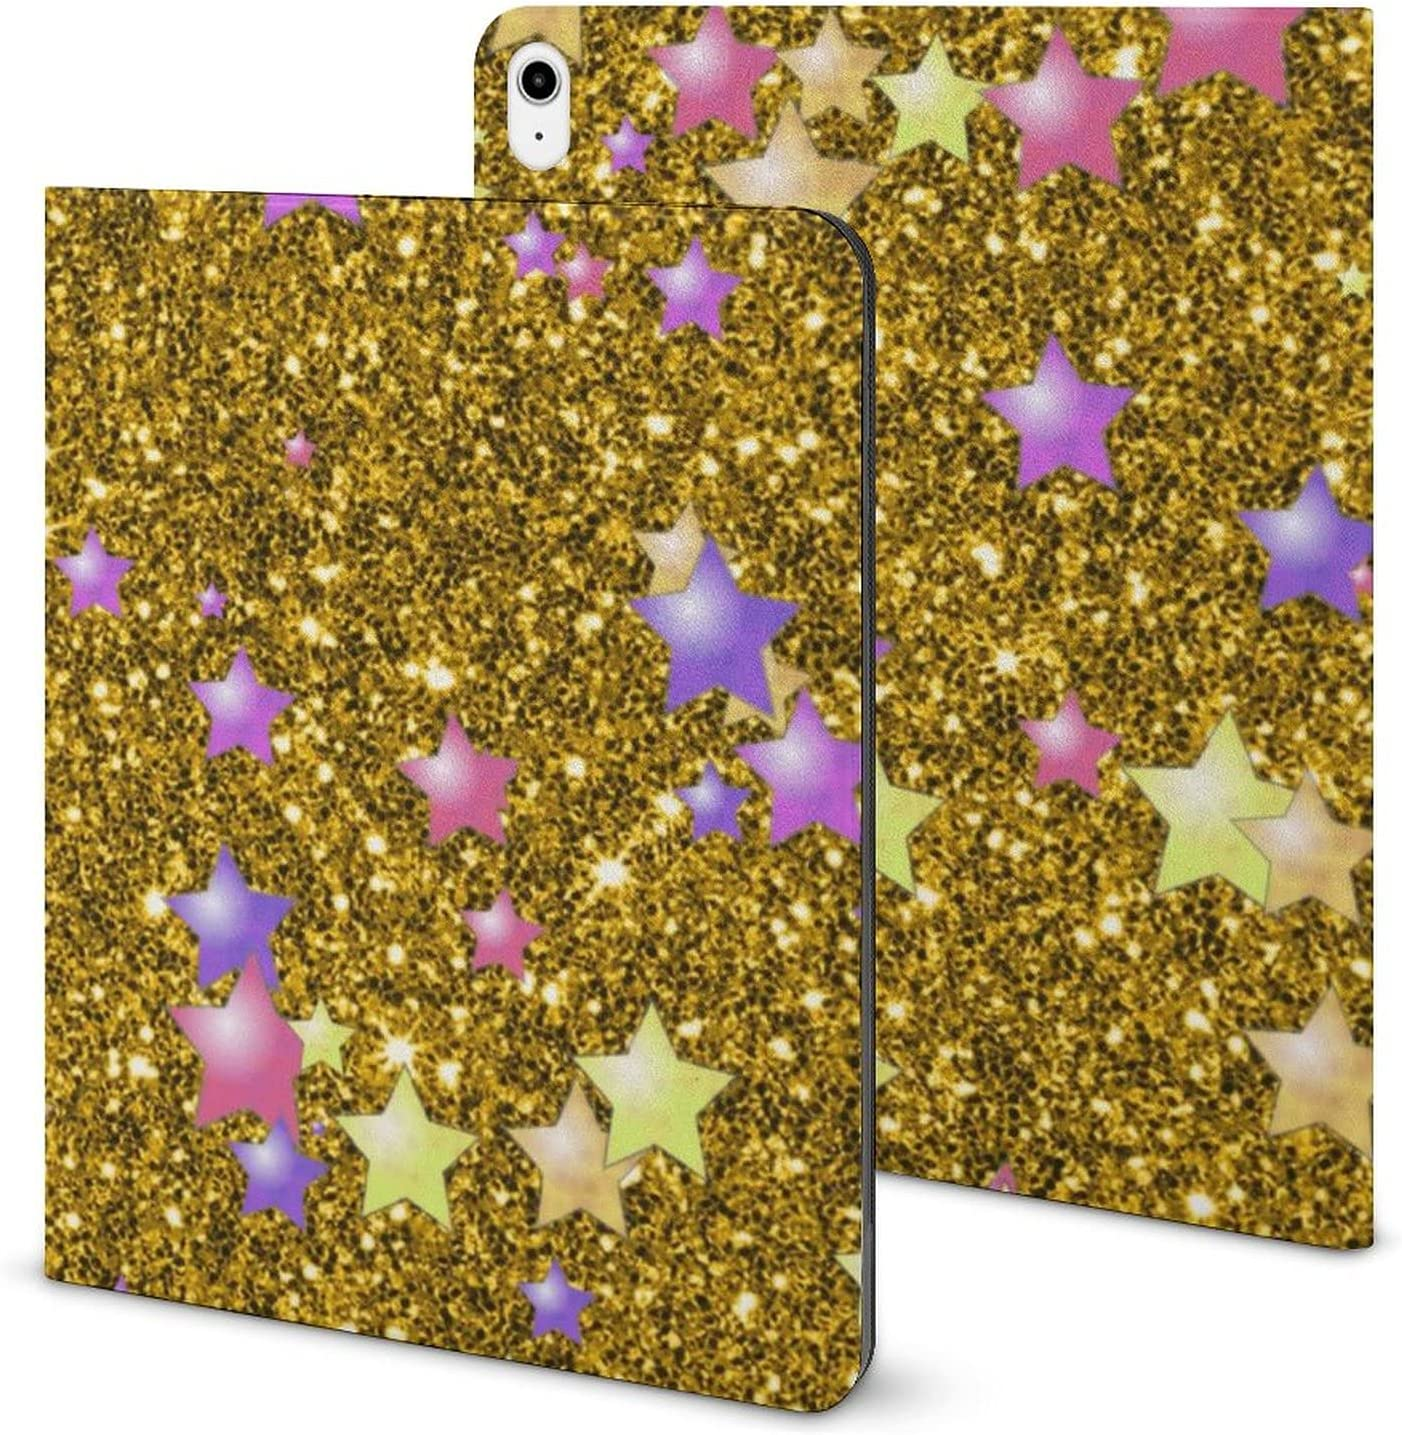 Stars on Sparkling Glitter Print Golden Max 82% OFF Case with Slot Ipad Pen Ranking TOP11